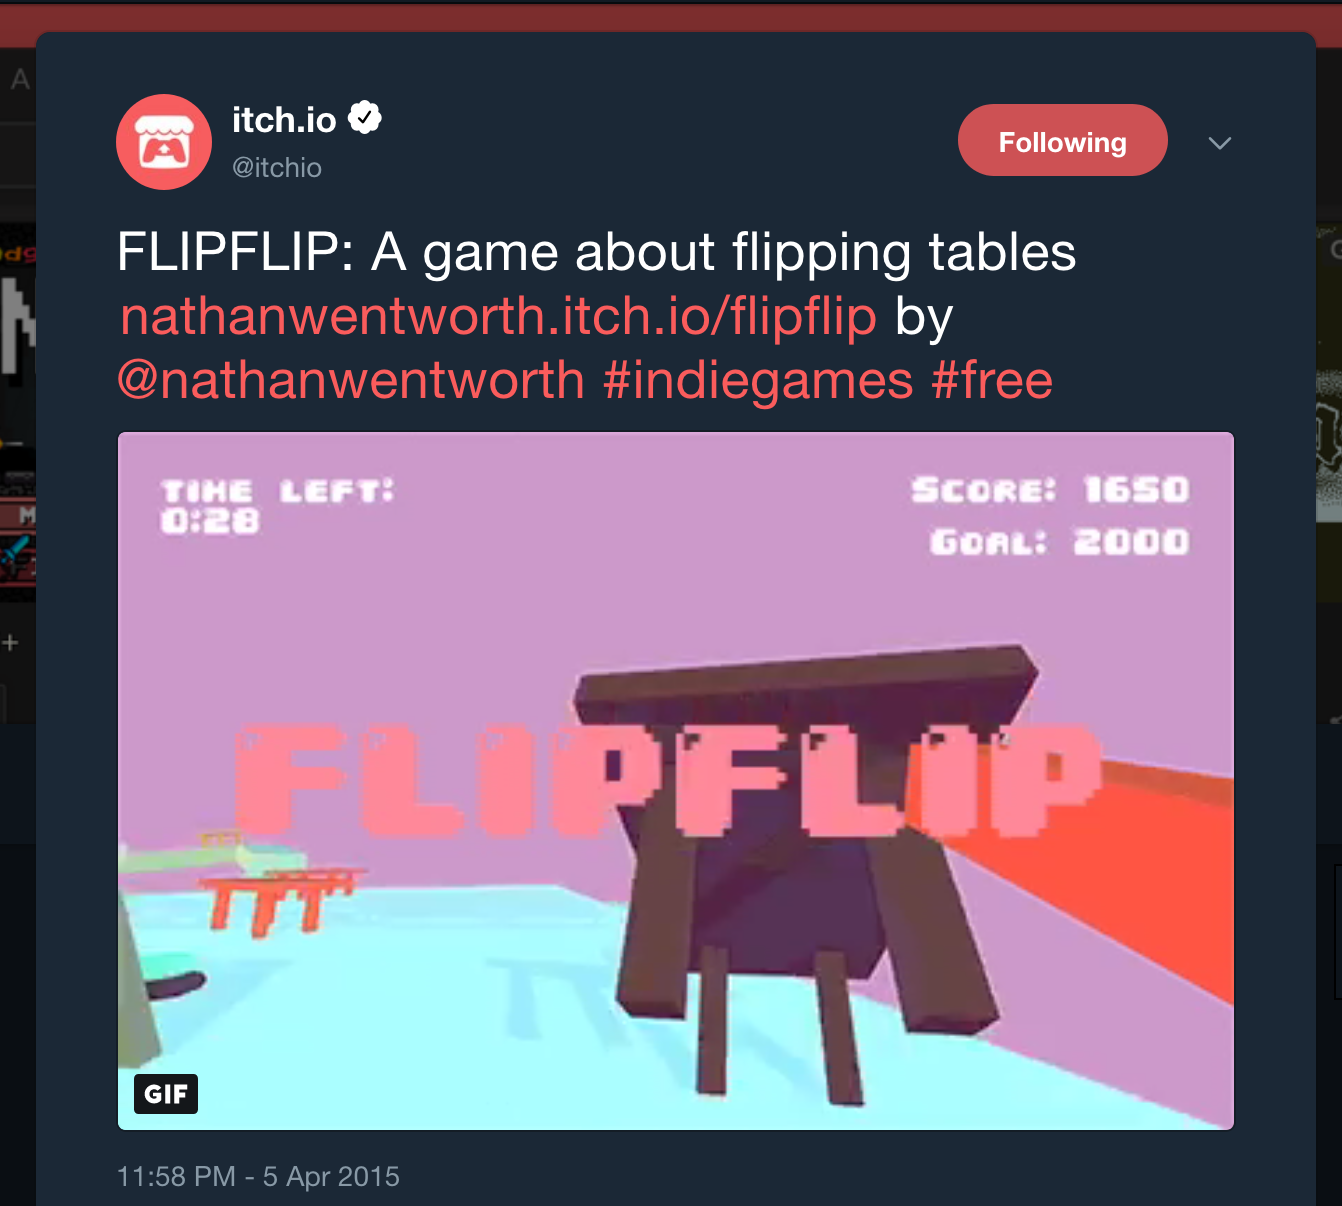 itch.io tweet